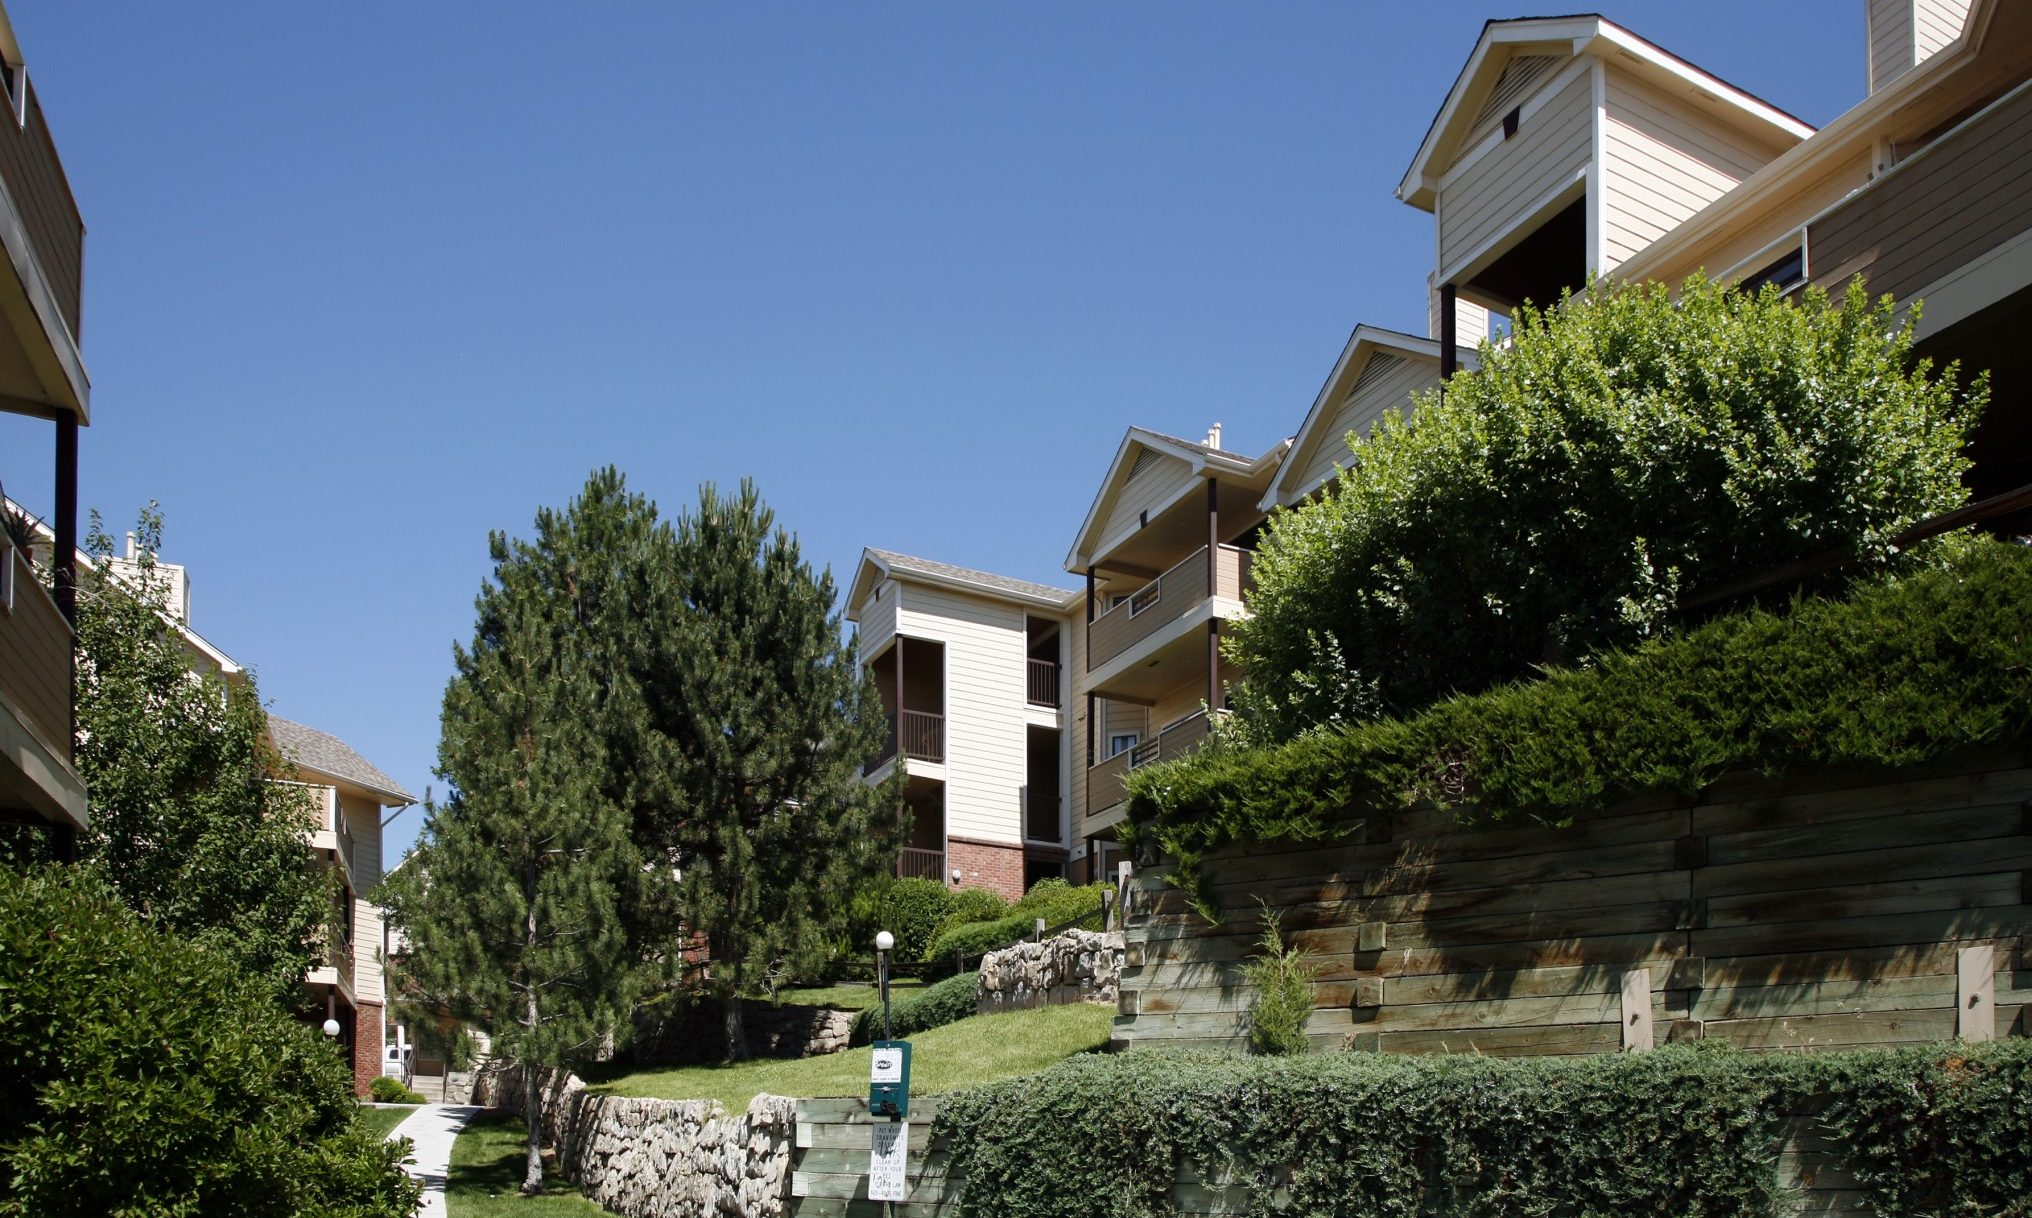 Upward view of apartment buildings and landscaping.